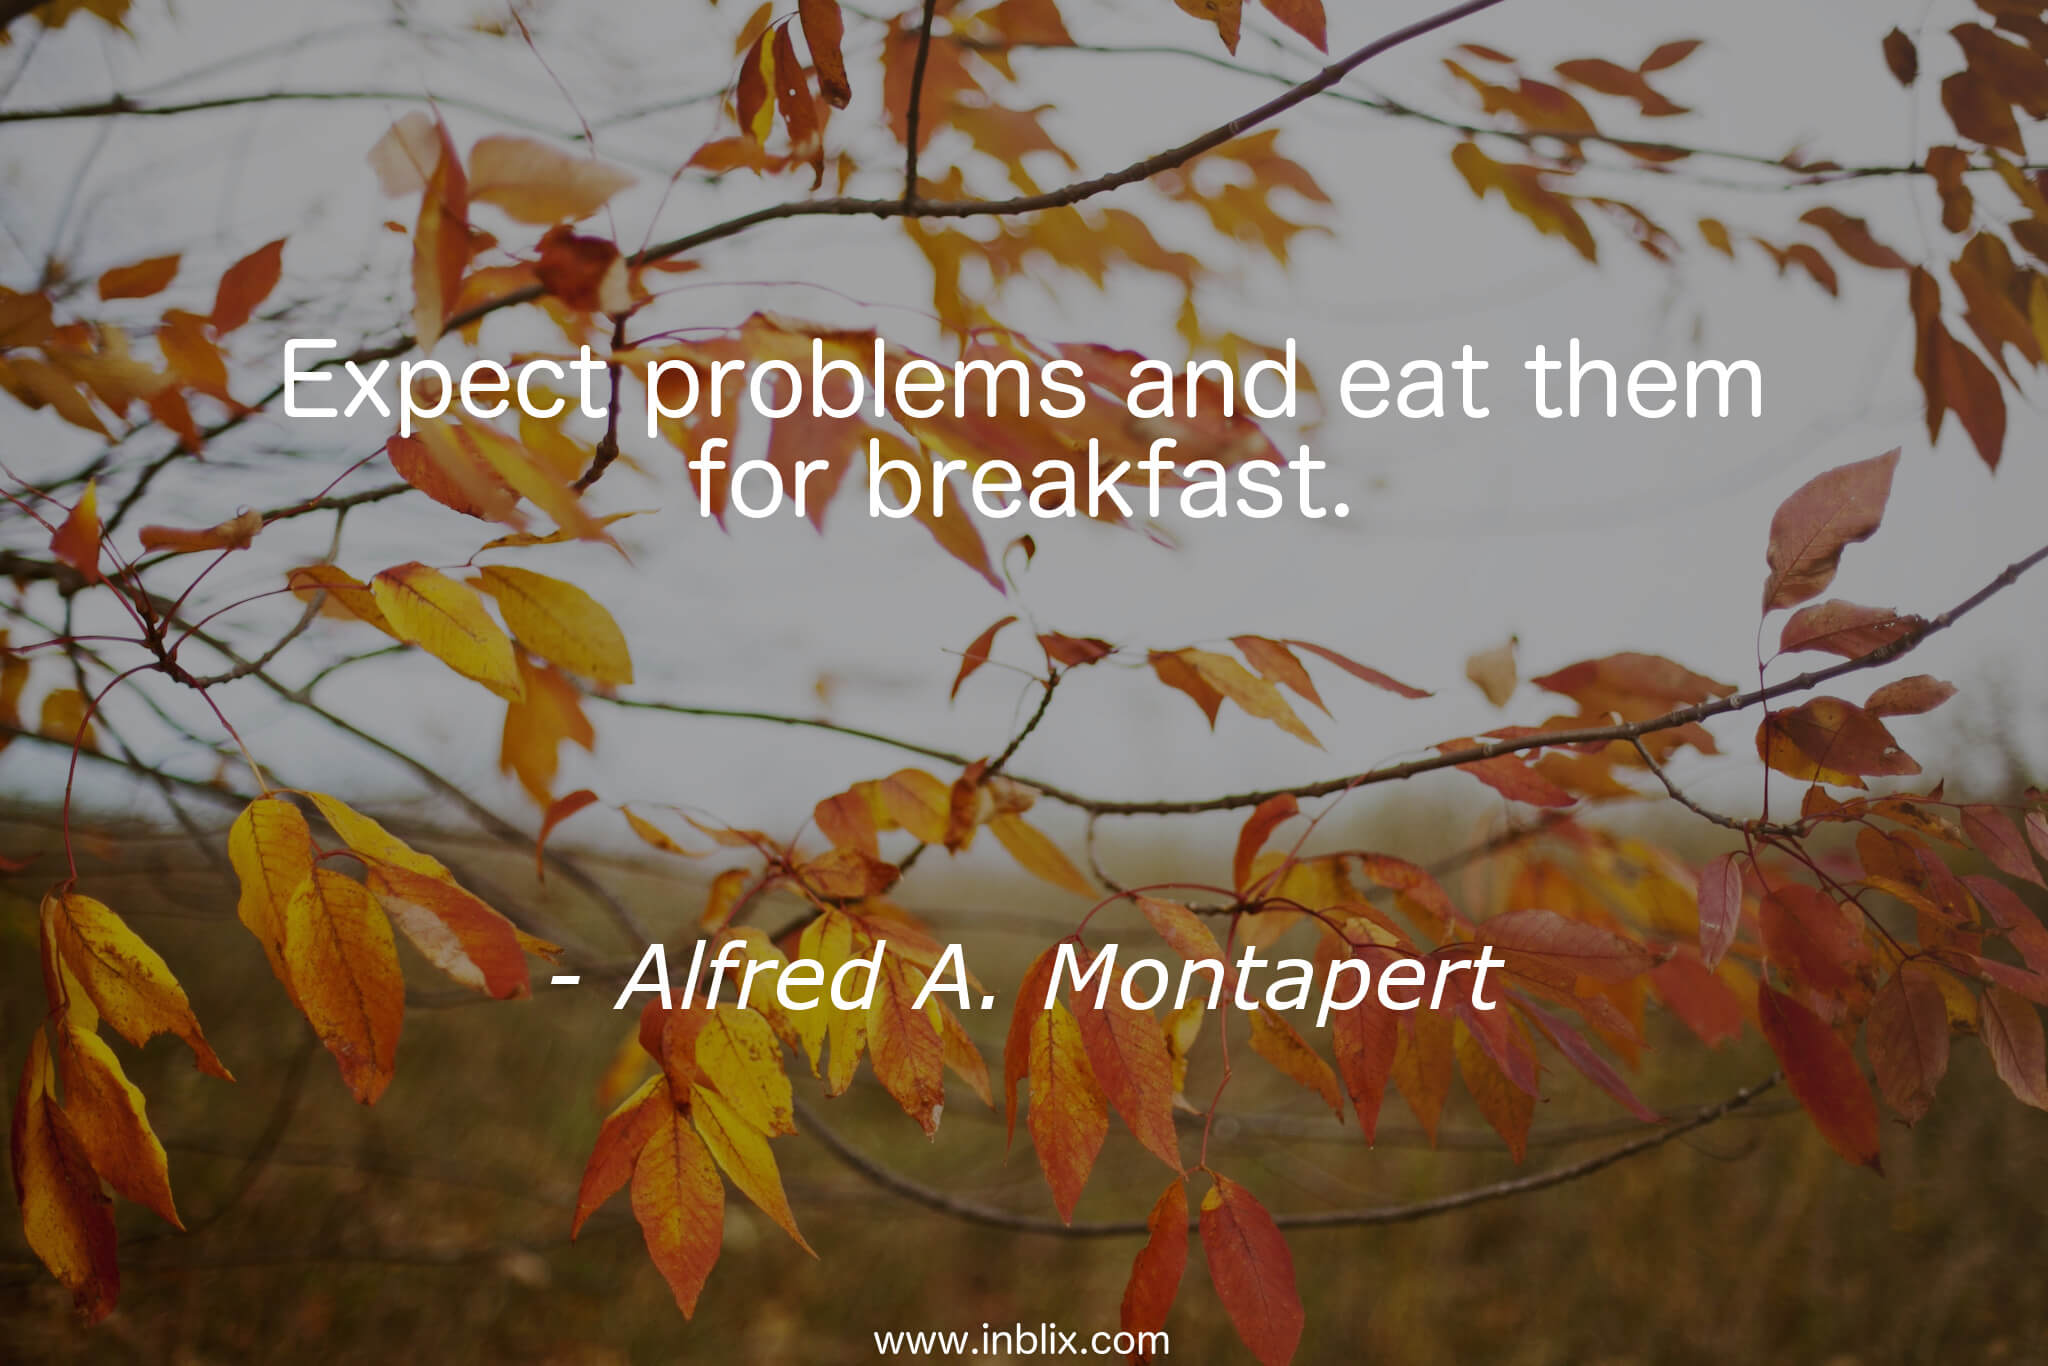 Expect problems and eat them for breakfast.